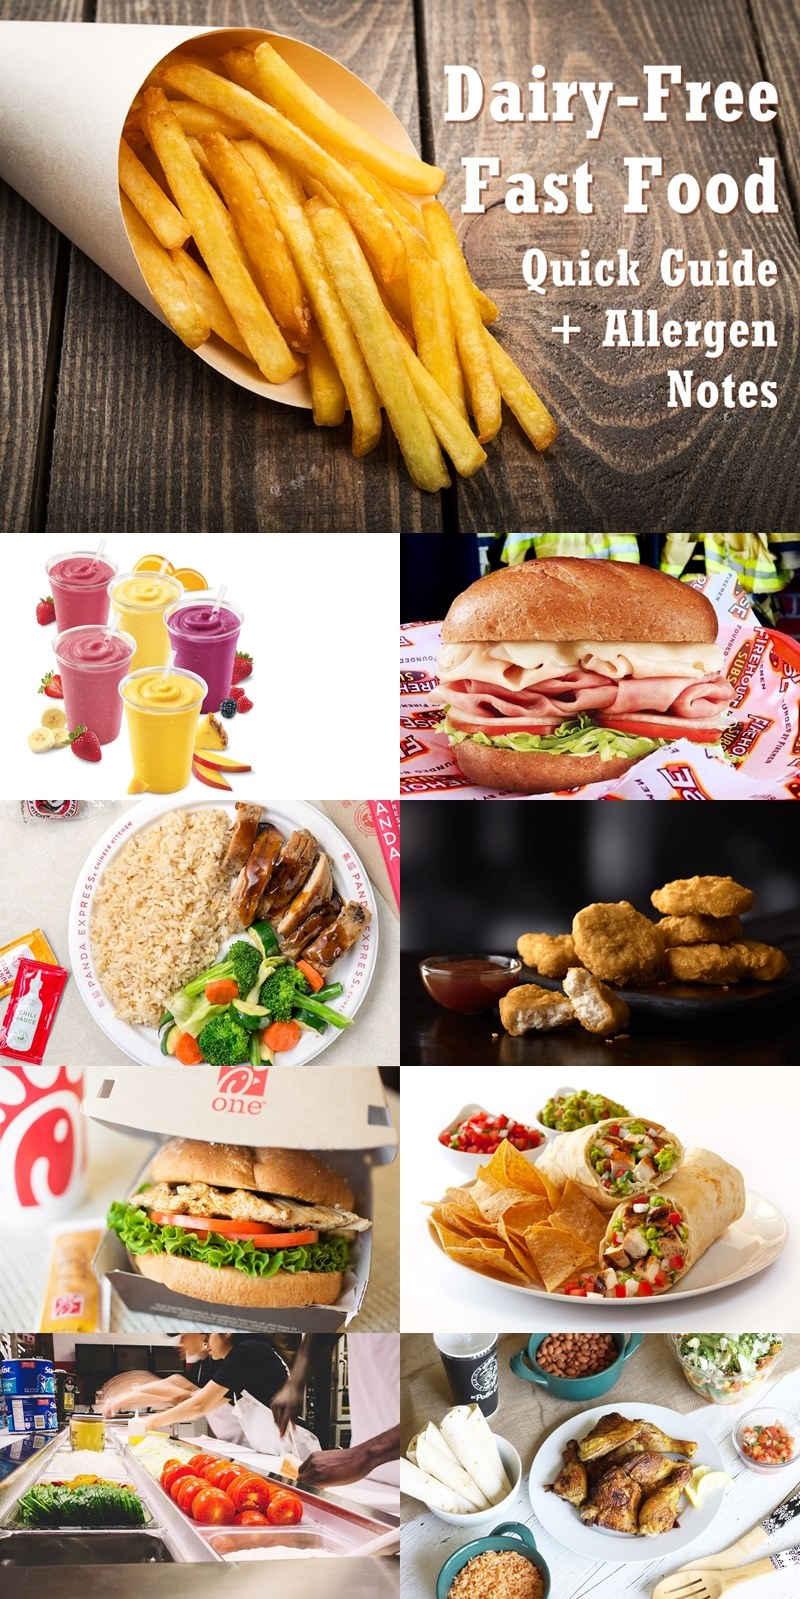 Dairy-Free Fast Food Listings - Quick Guide + Allergen Notes